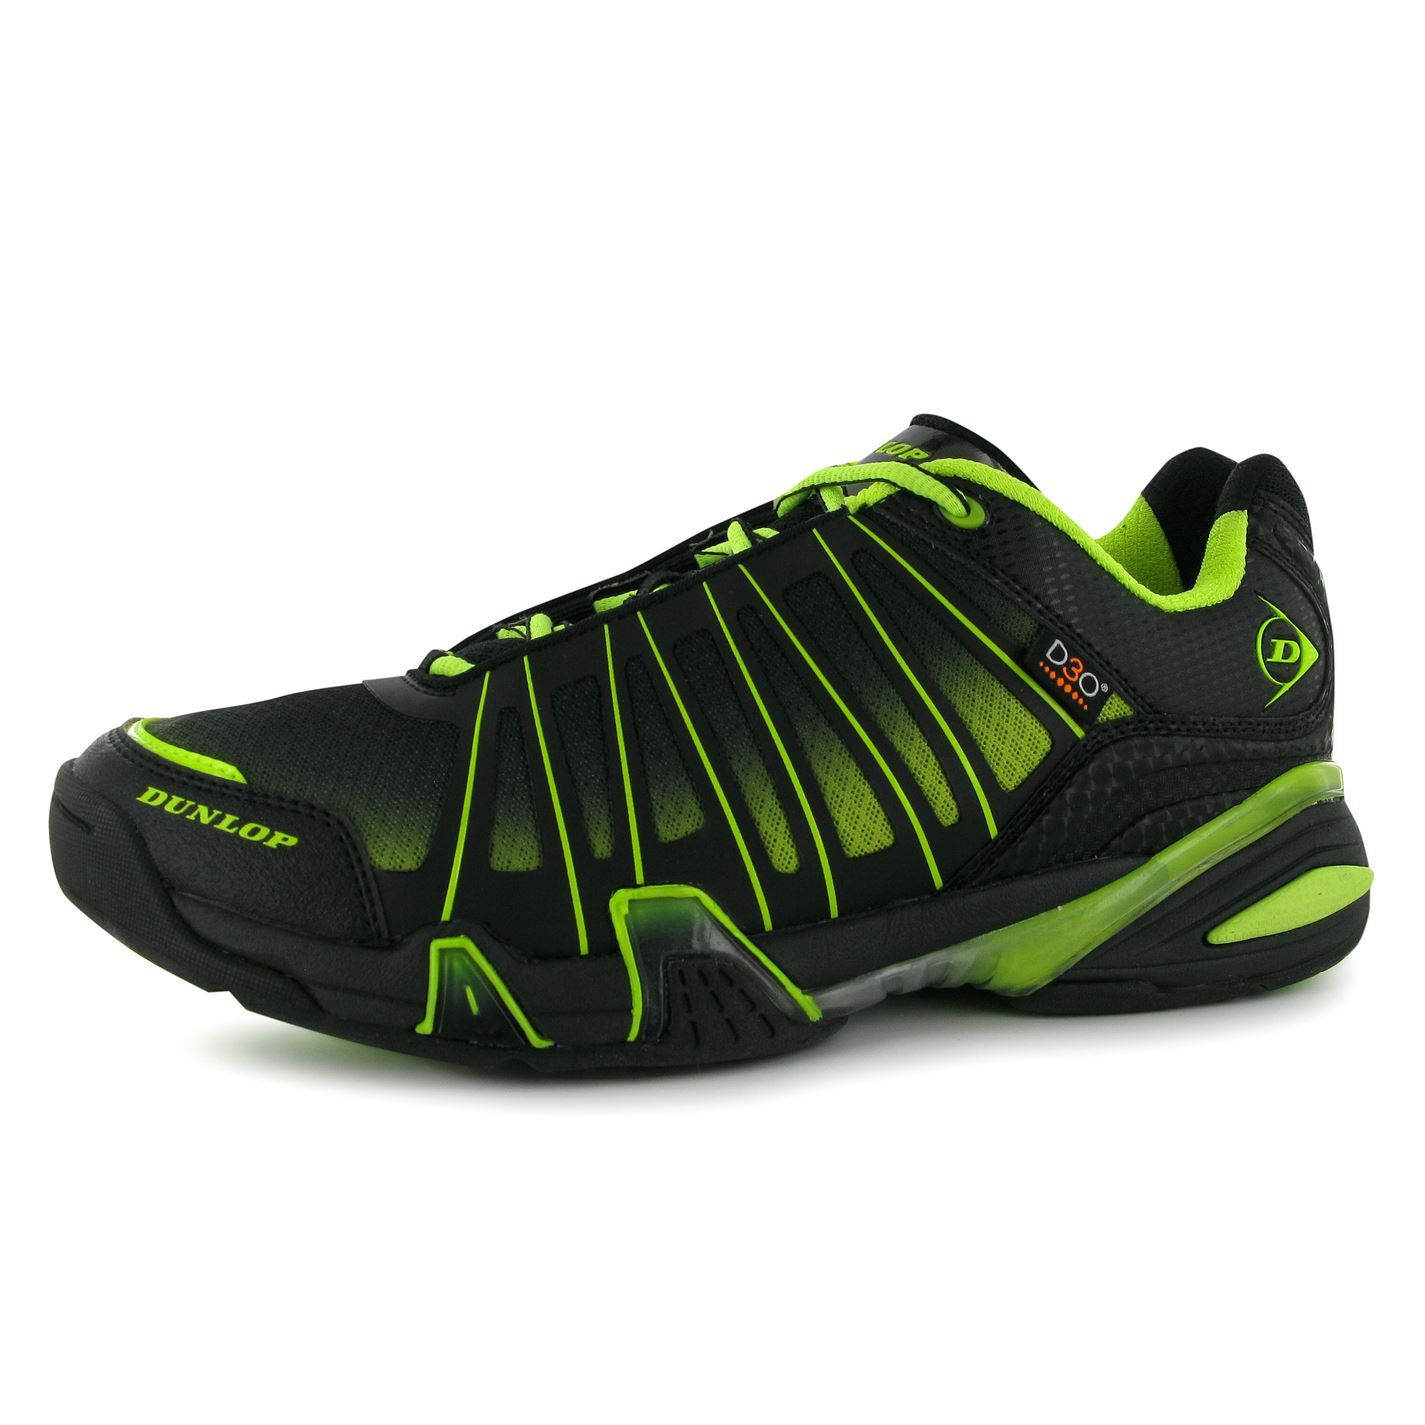 Best Squash Shoes For Kids